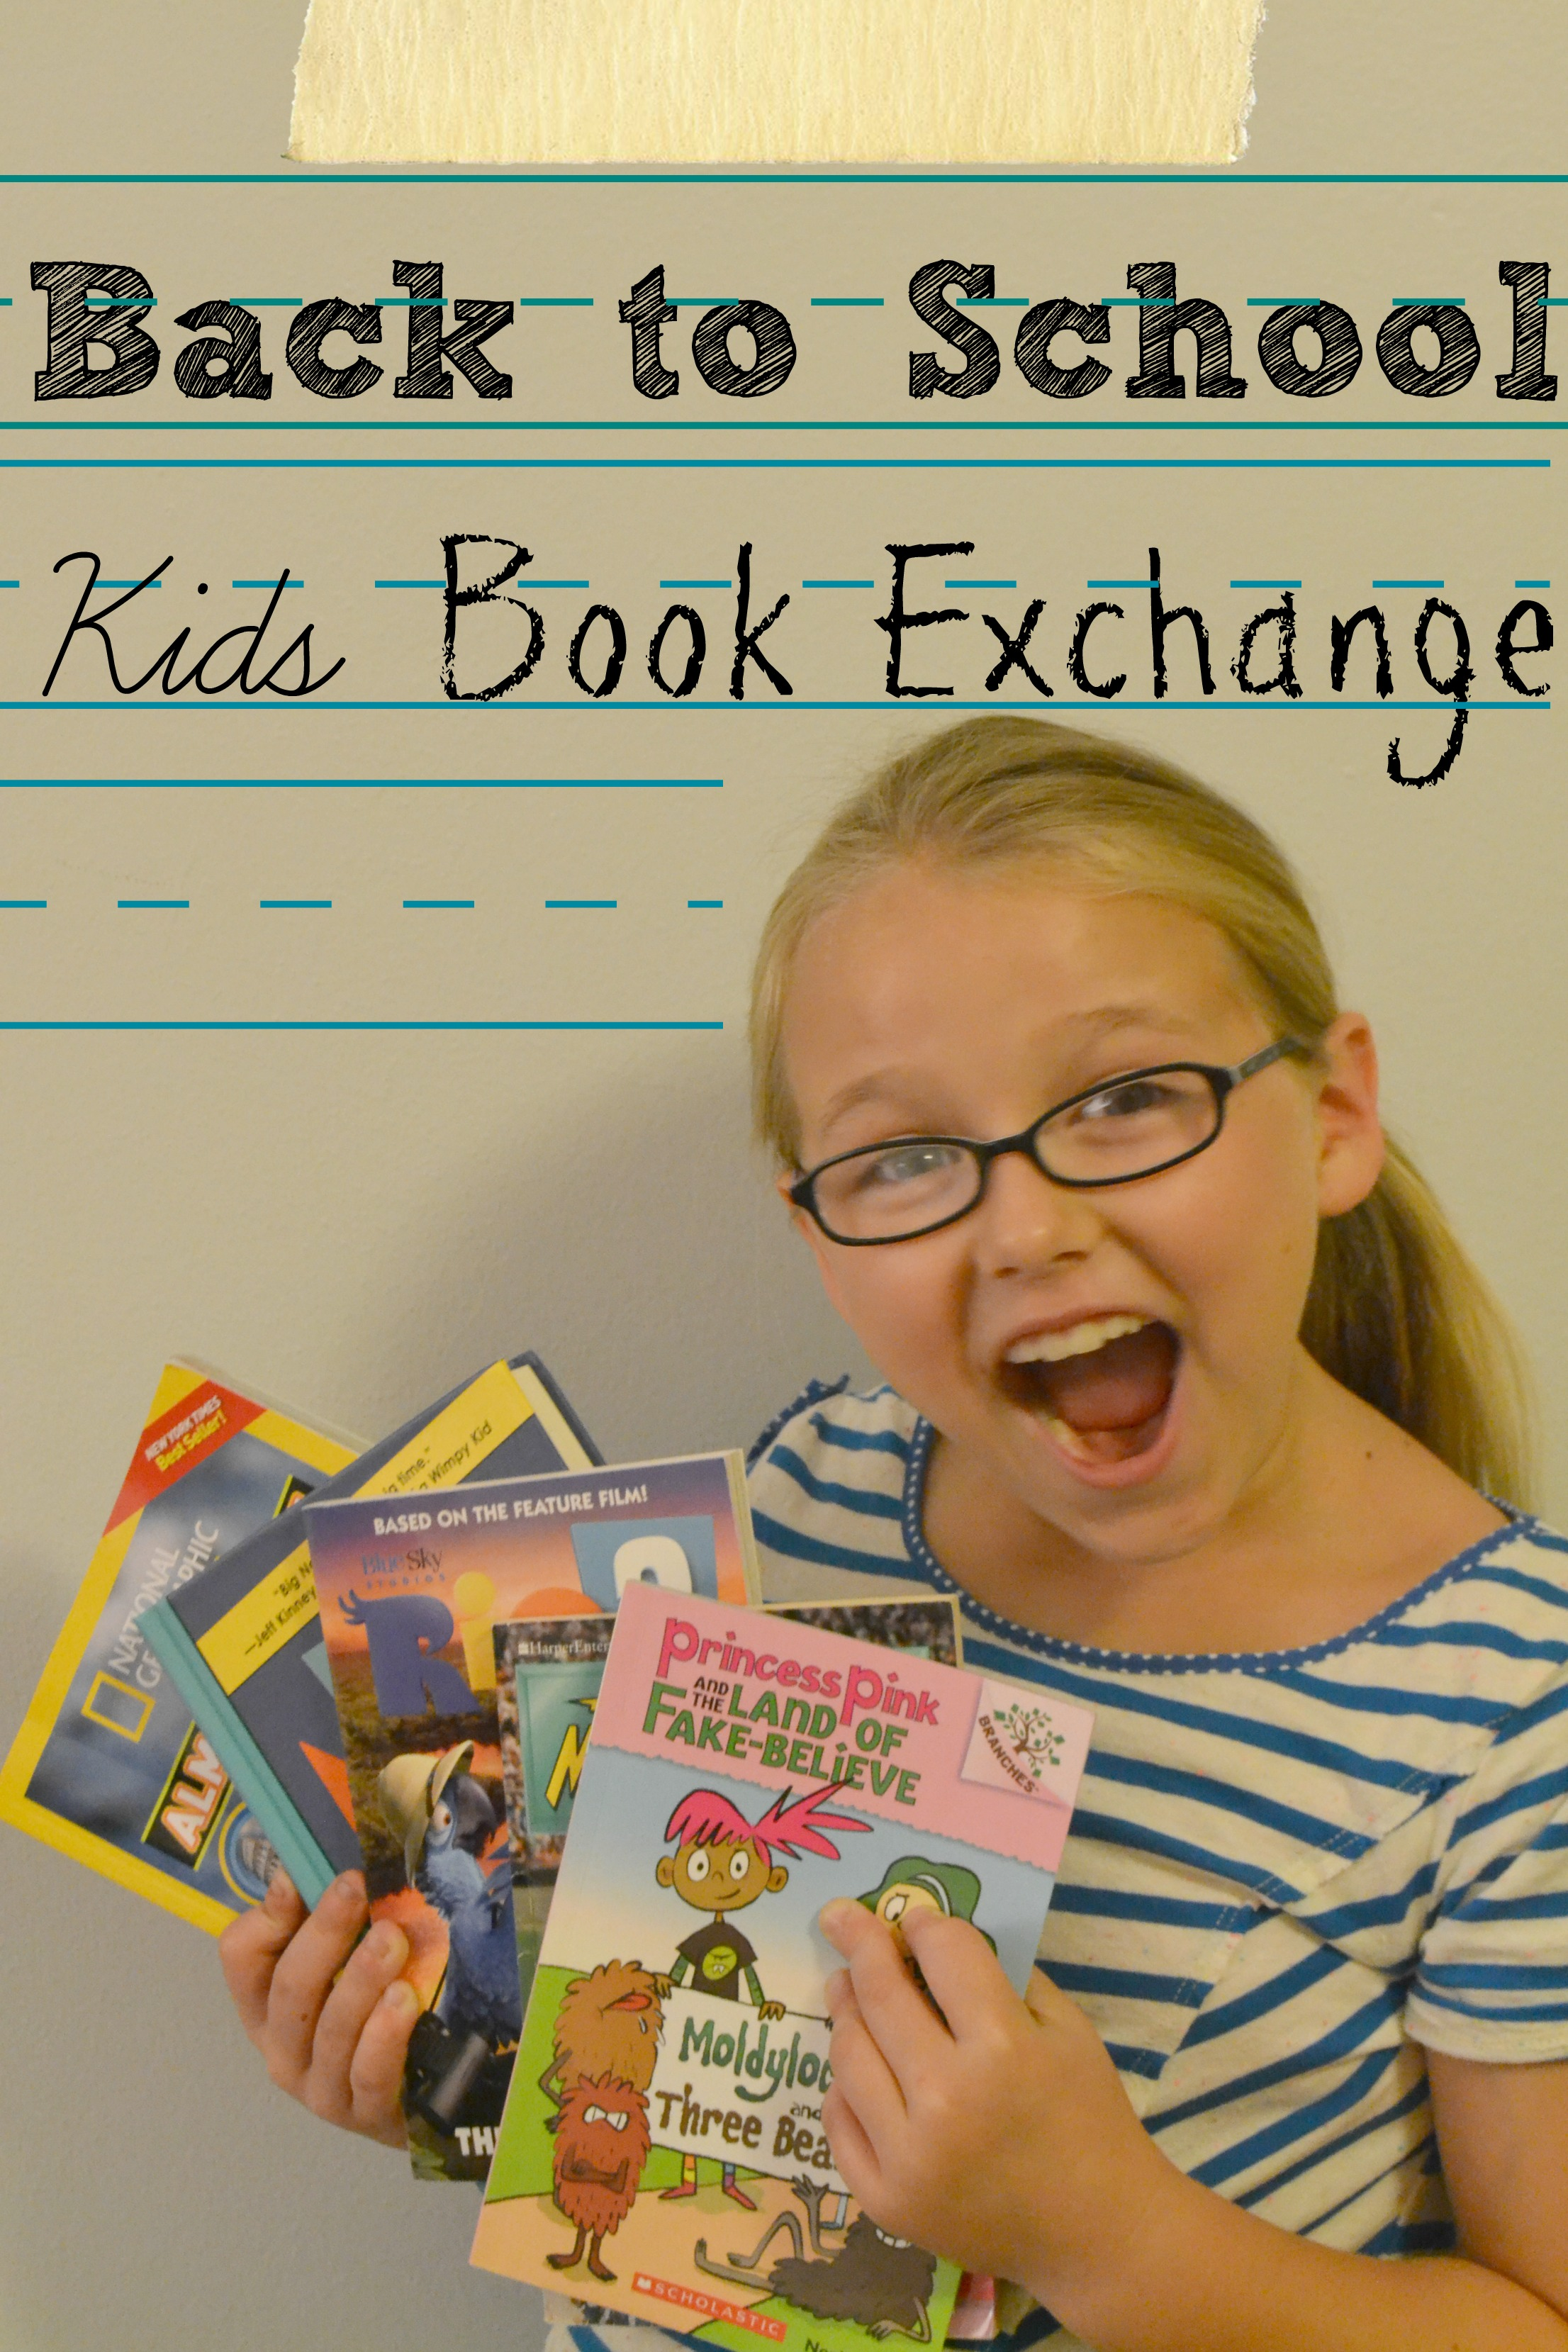 Back to School Book Exchange